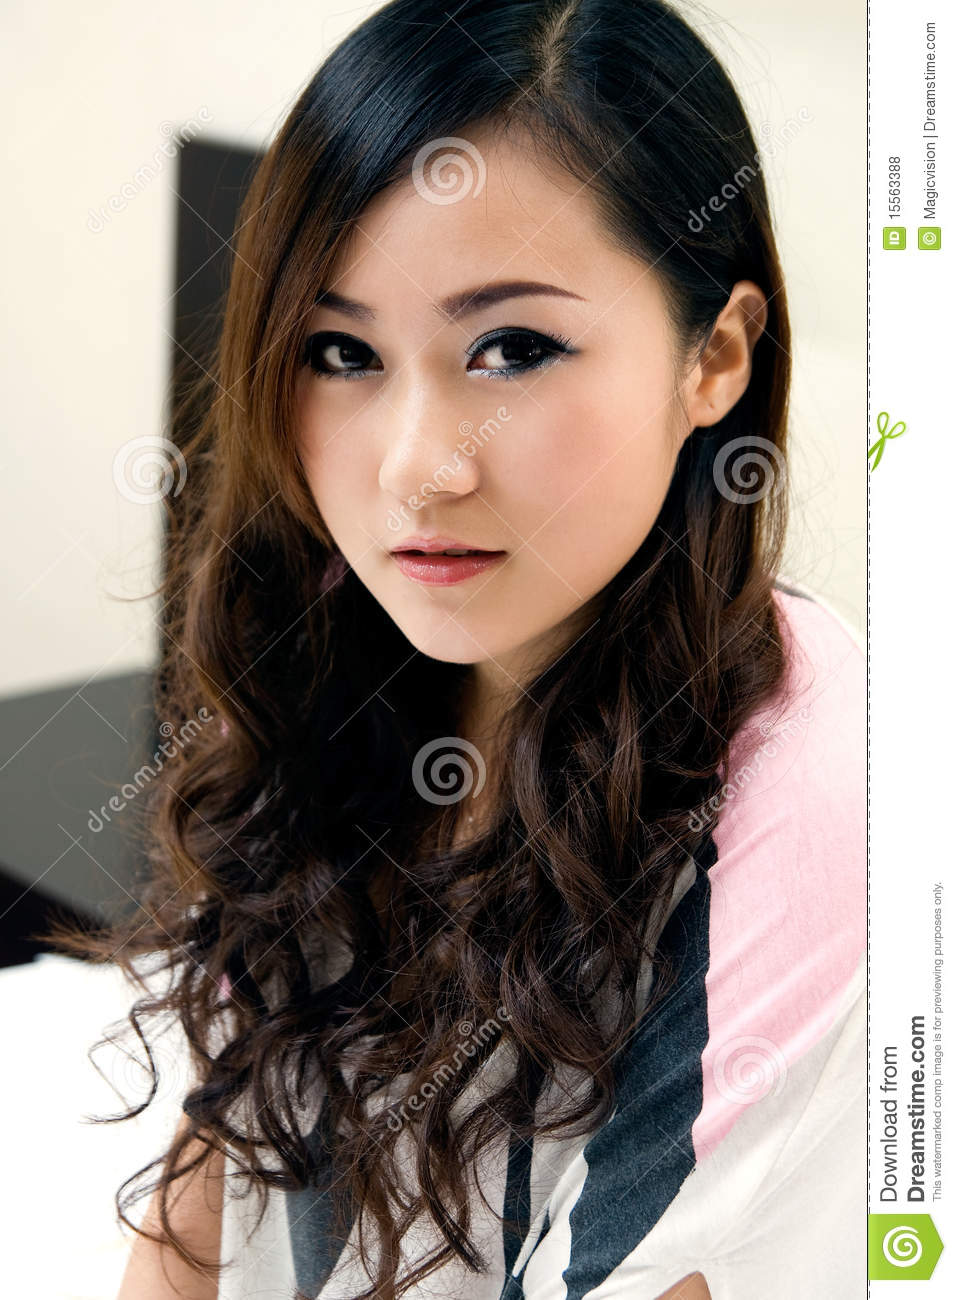 belle fille chinoise